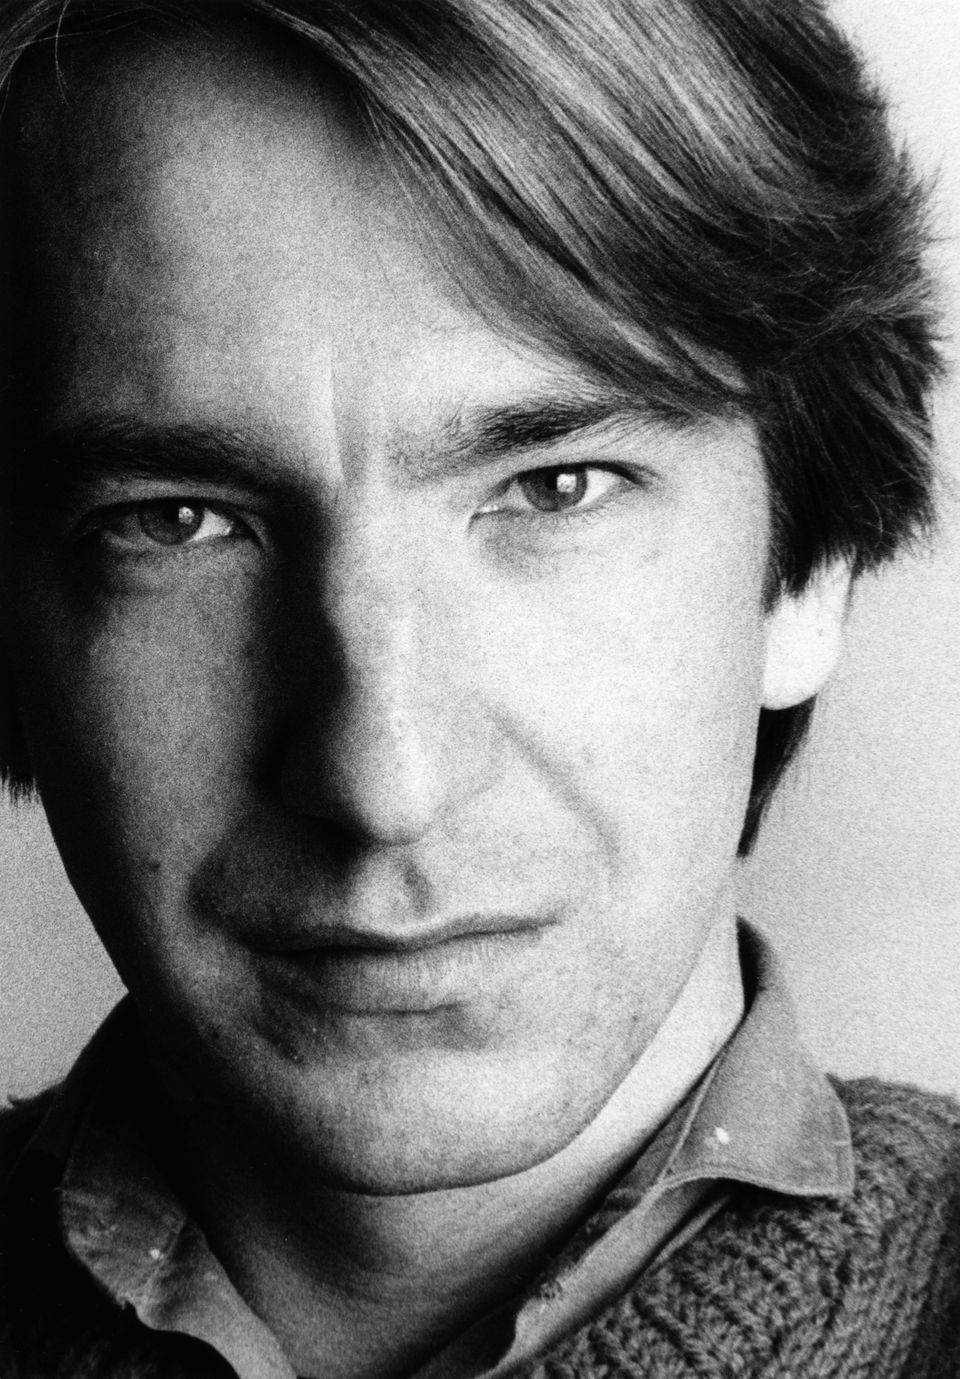 English actor Alan Rickman, London, 1984. (Photo by Geoff Shields/Getty Images)